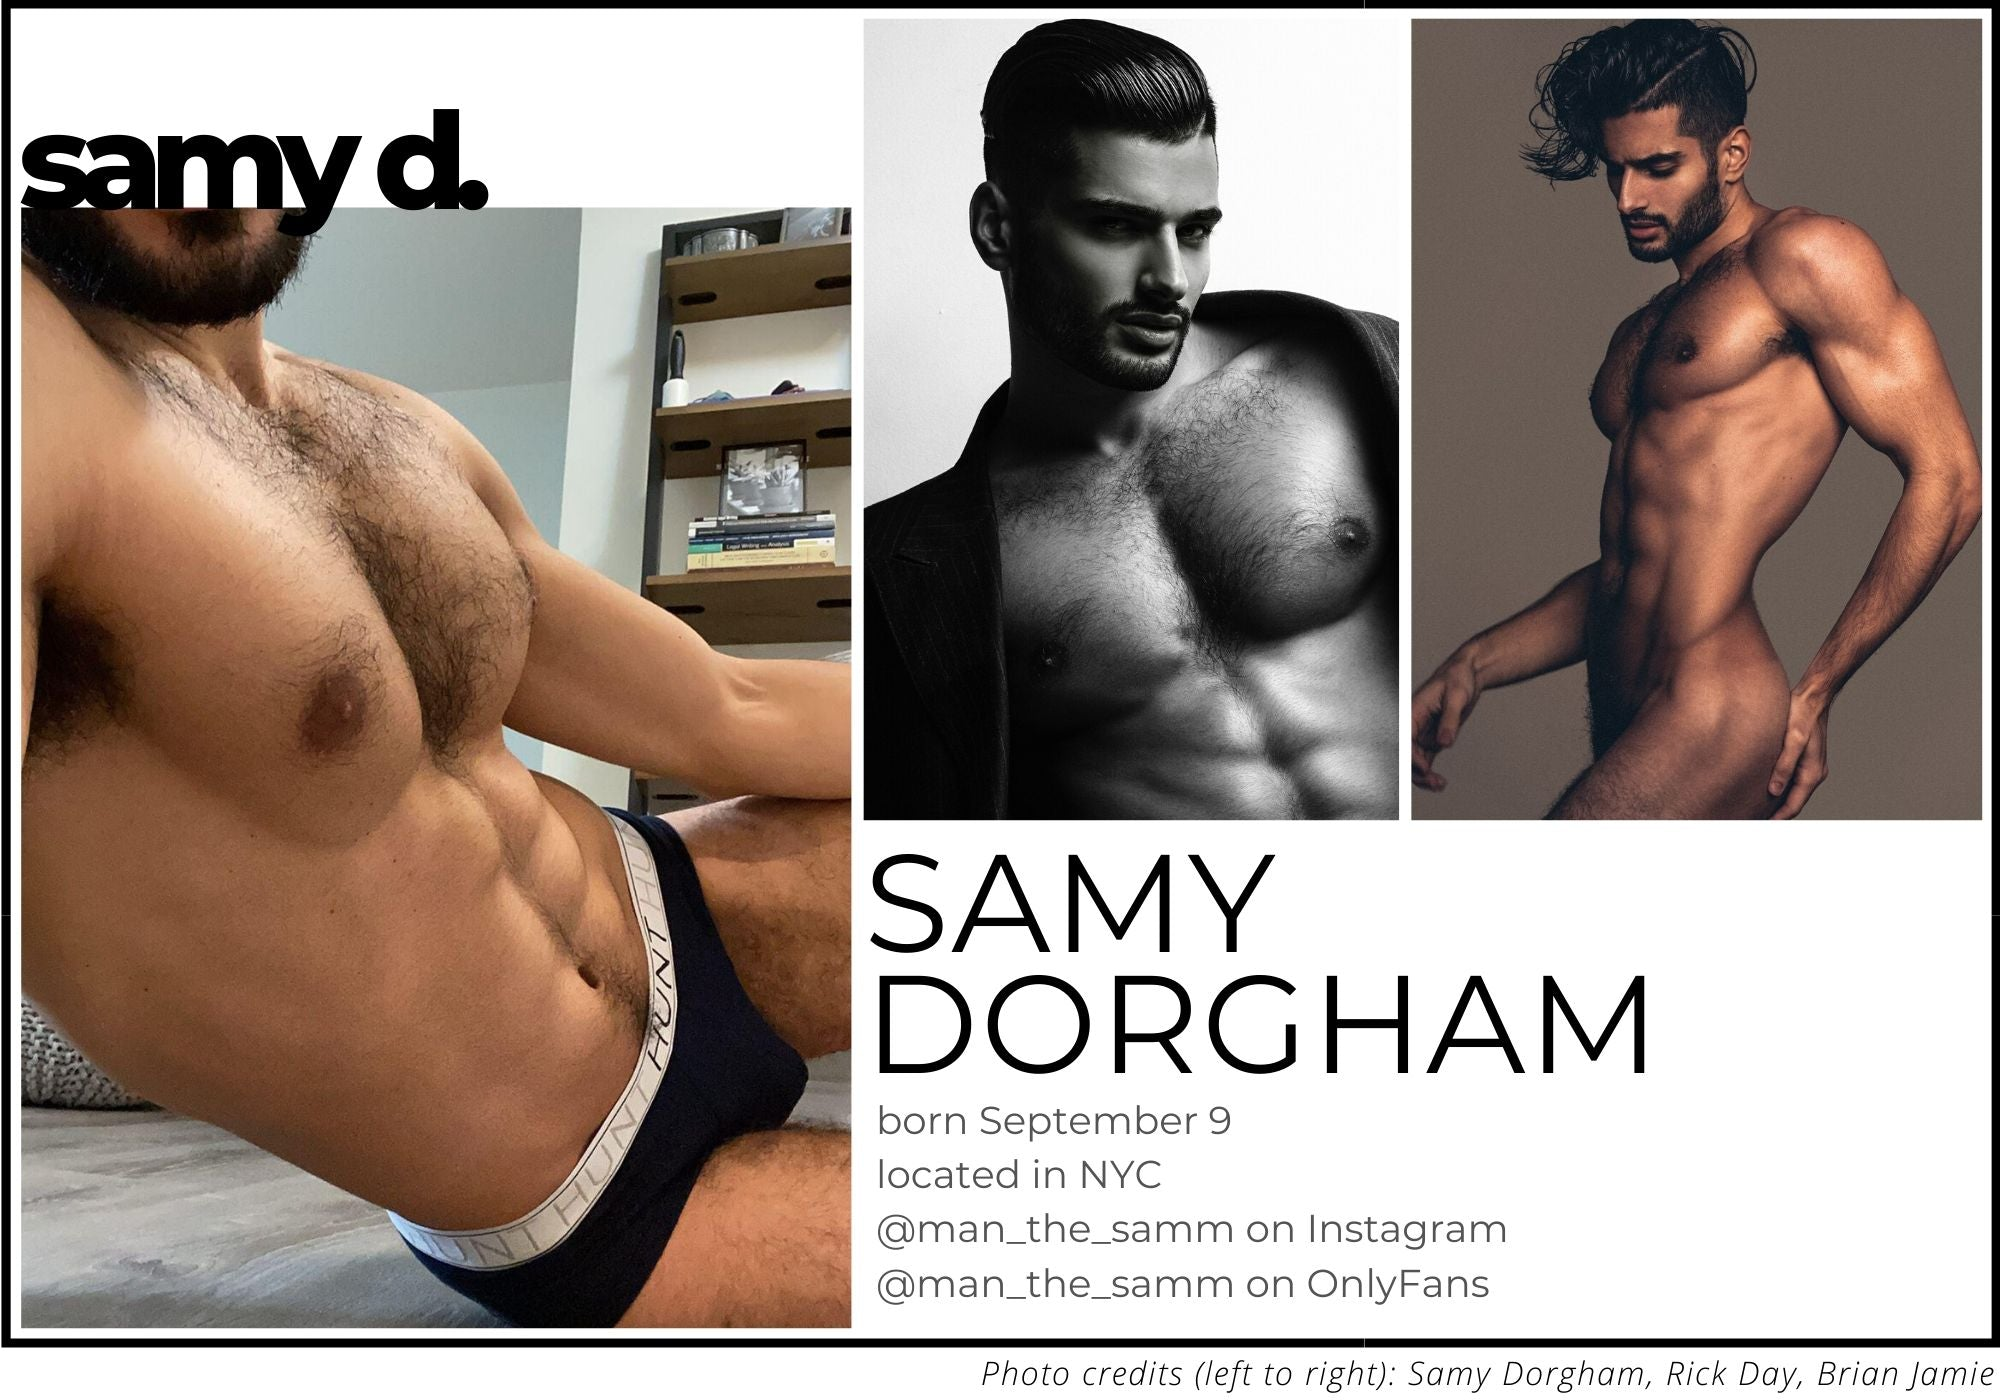 interview with samy dorgham, model and onlyfans performer